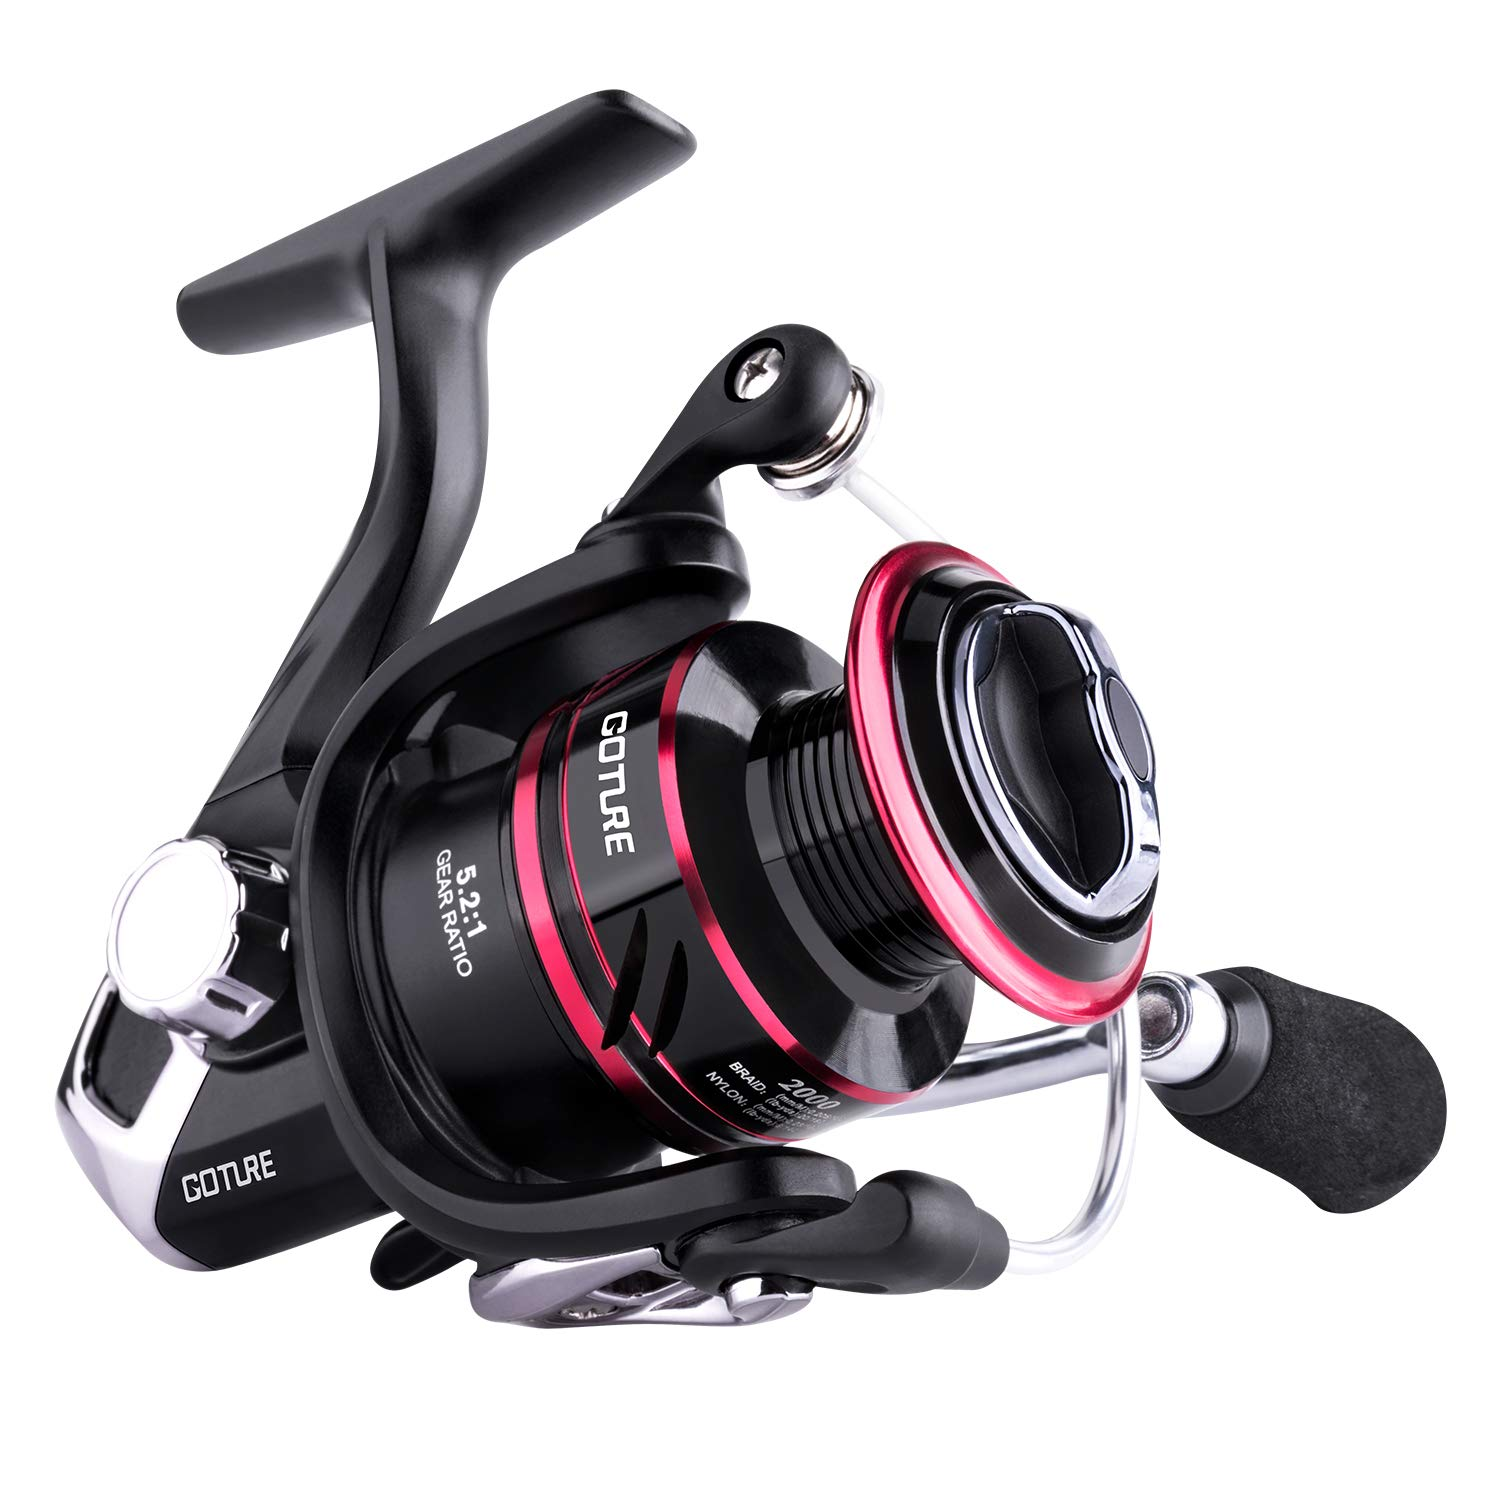 Goture Saltwater & Freshwater Fishing Reel